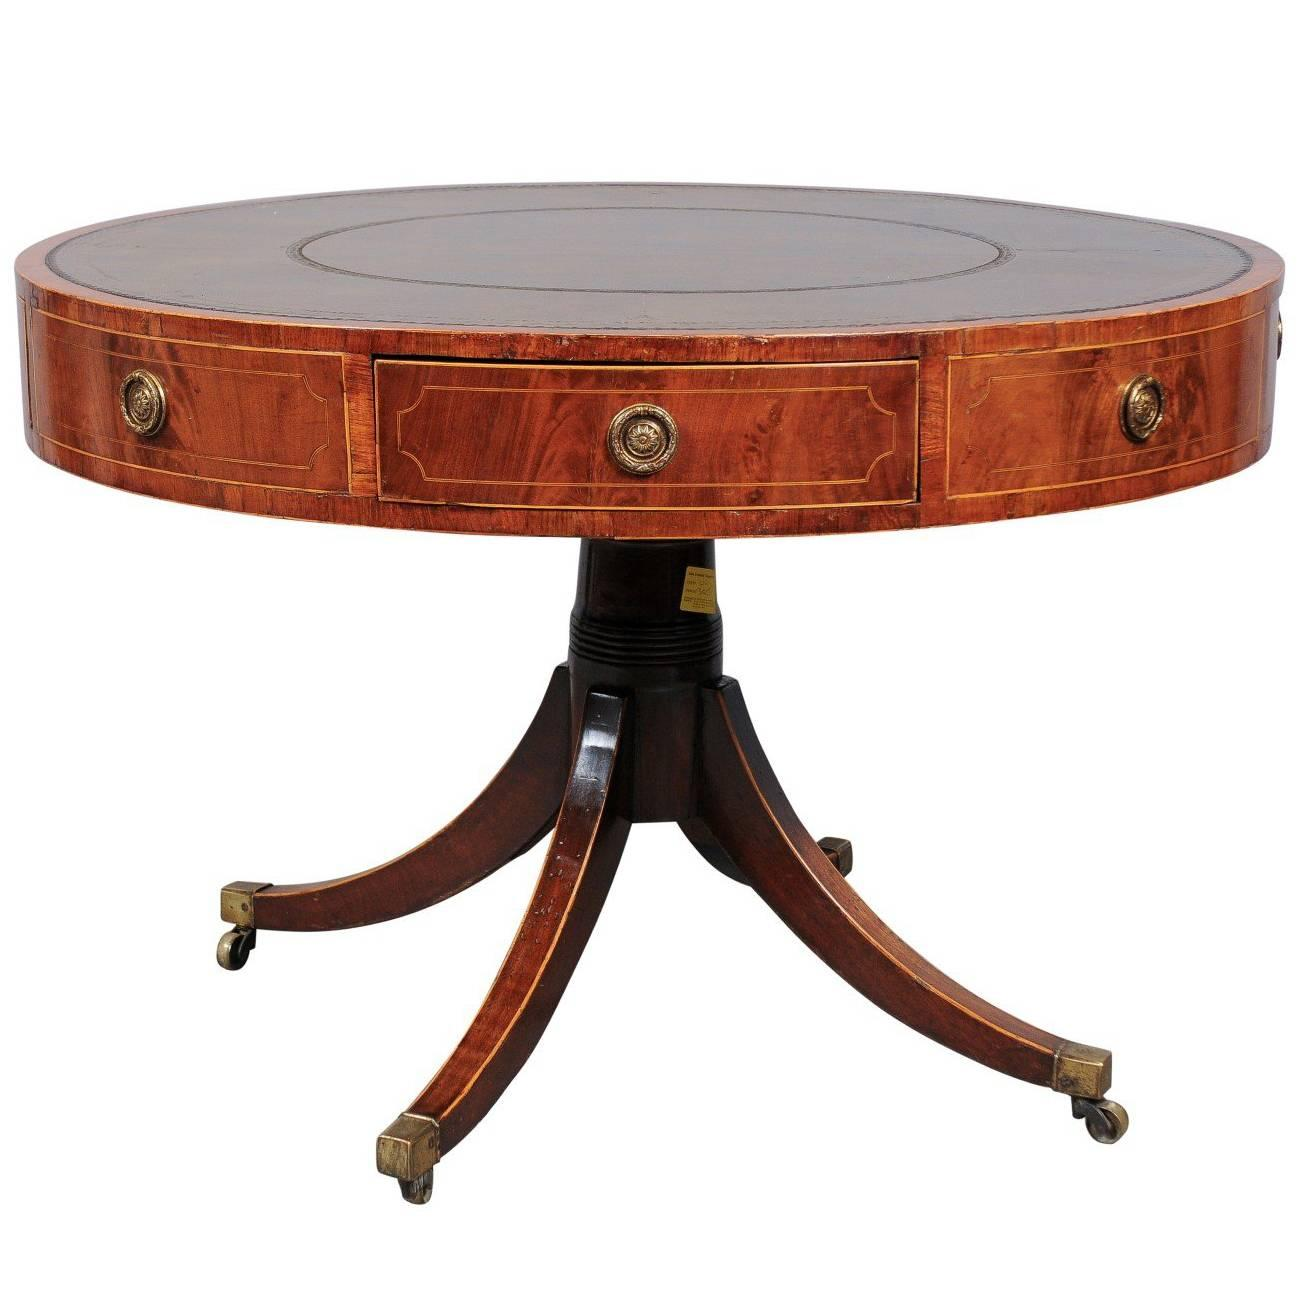 Revolving George III Mahogany Drum Table with Inset Green Leather Top